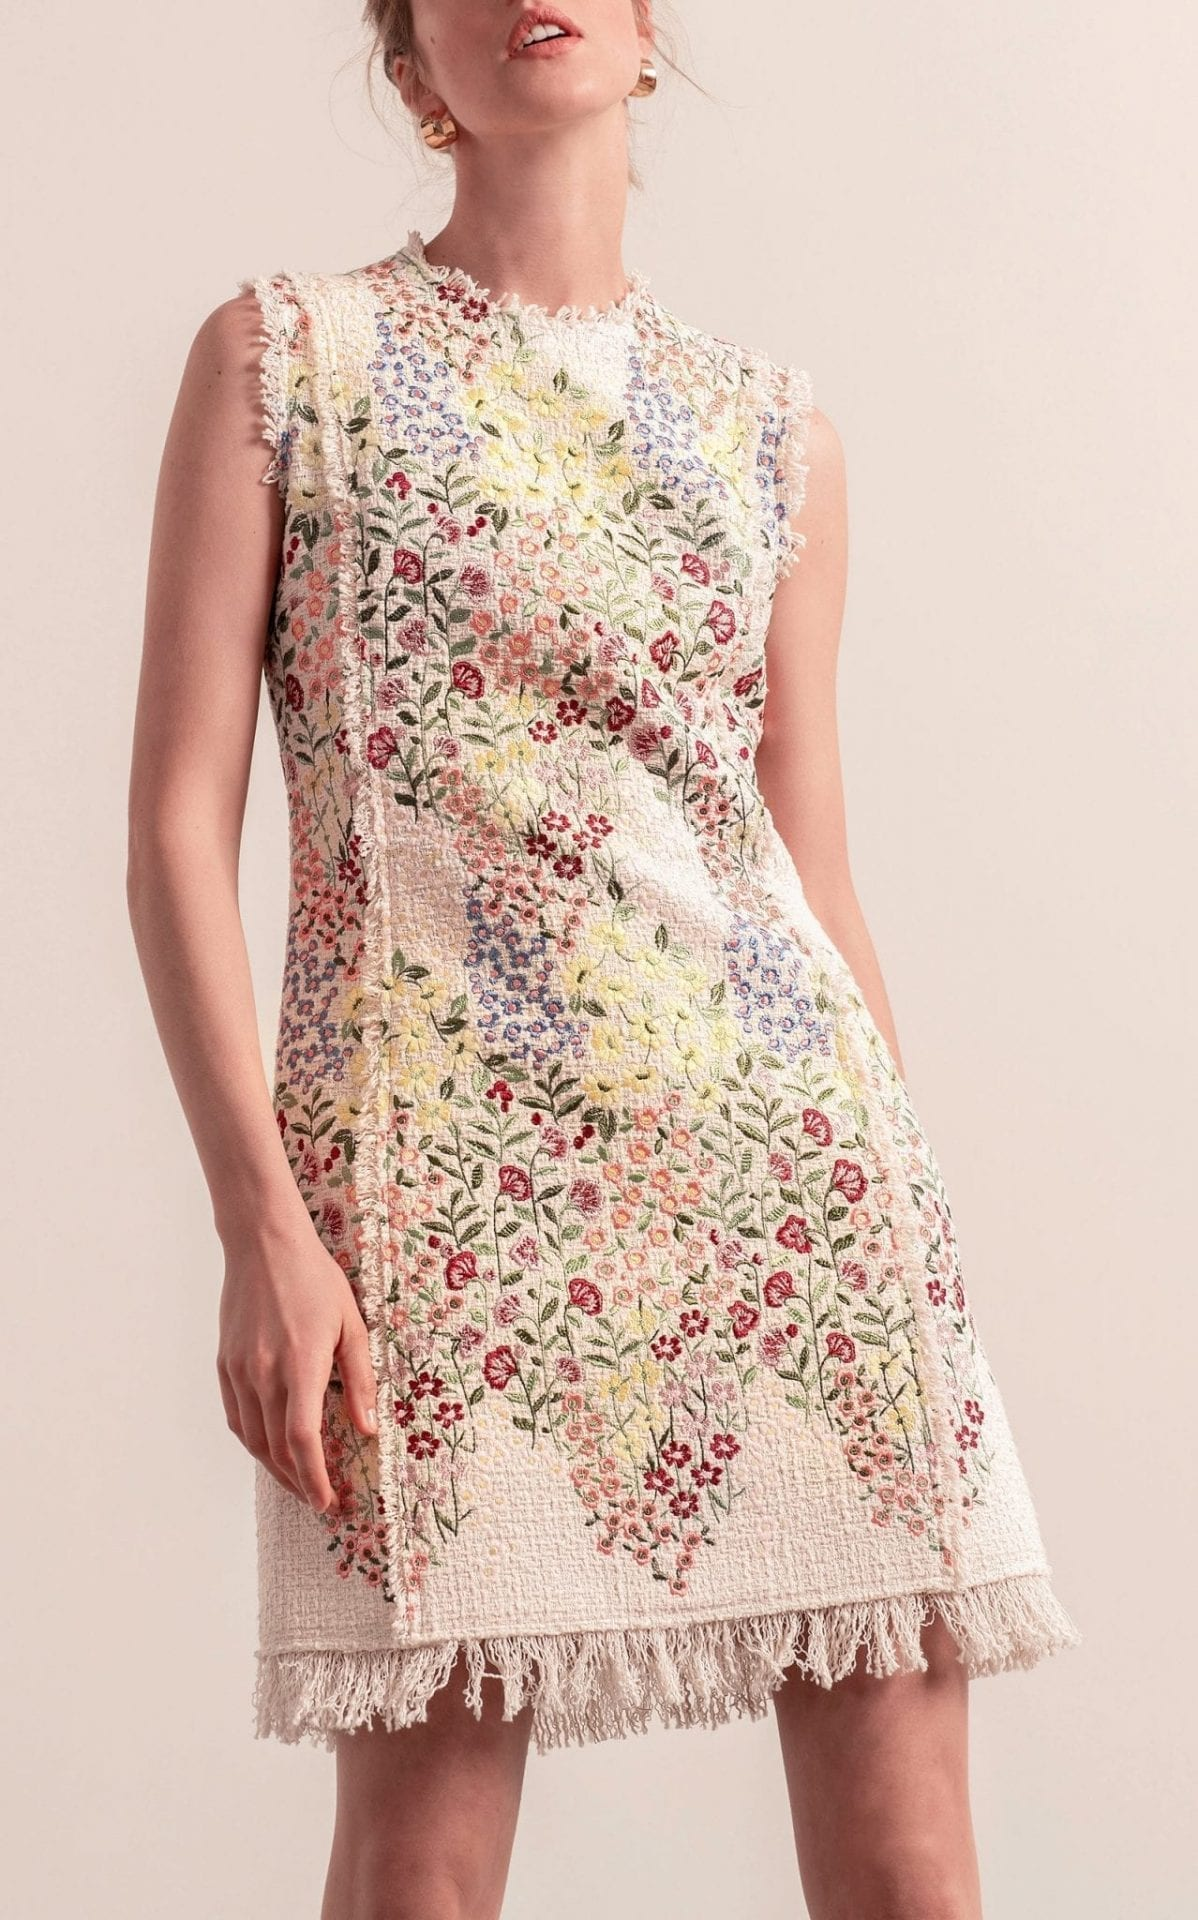 GIAMBATTISTA VALLI Frayed Floral Jacquard Mini Dress